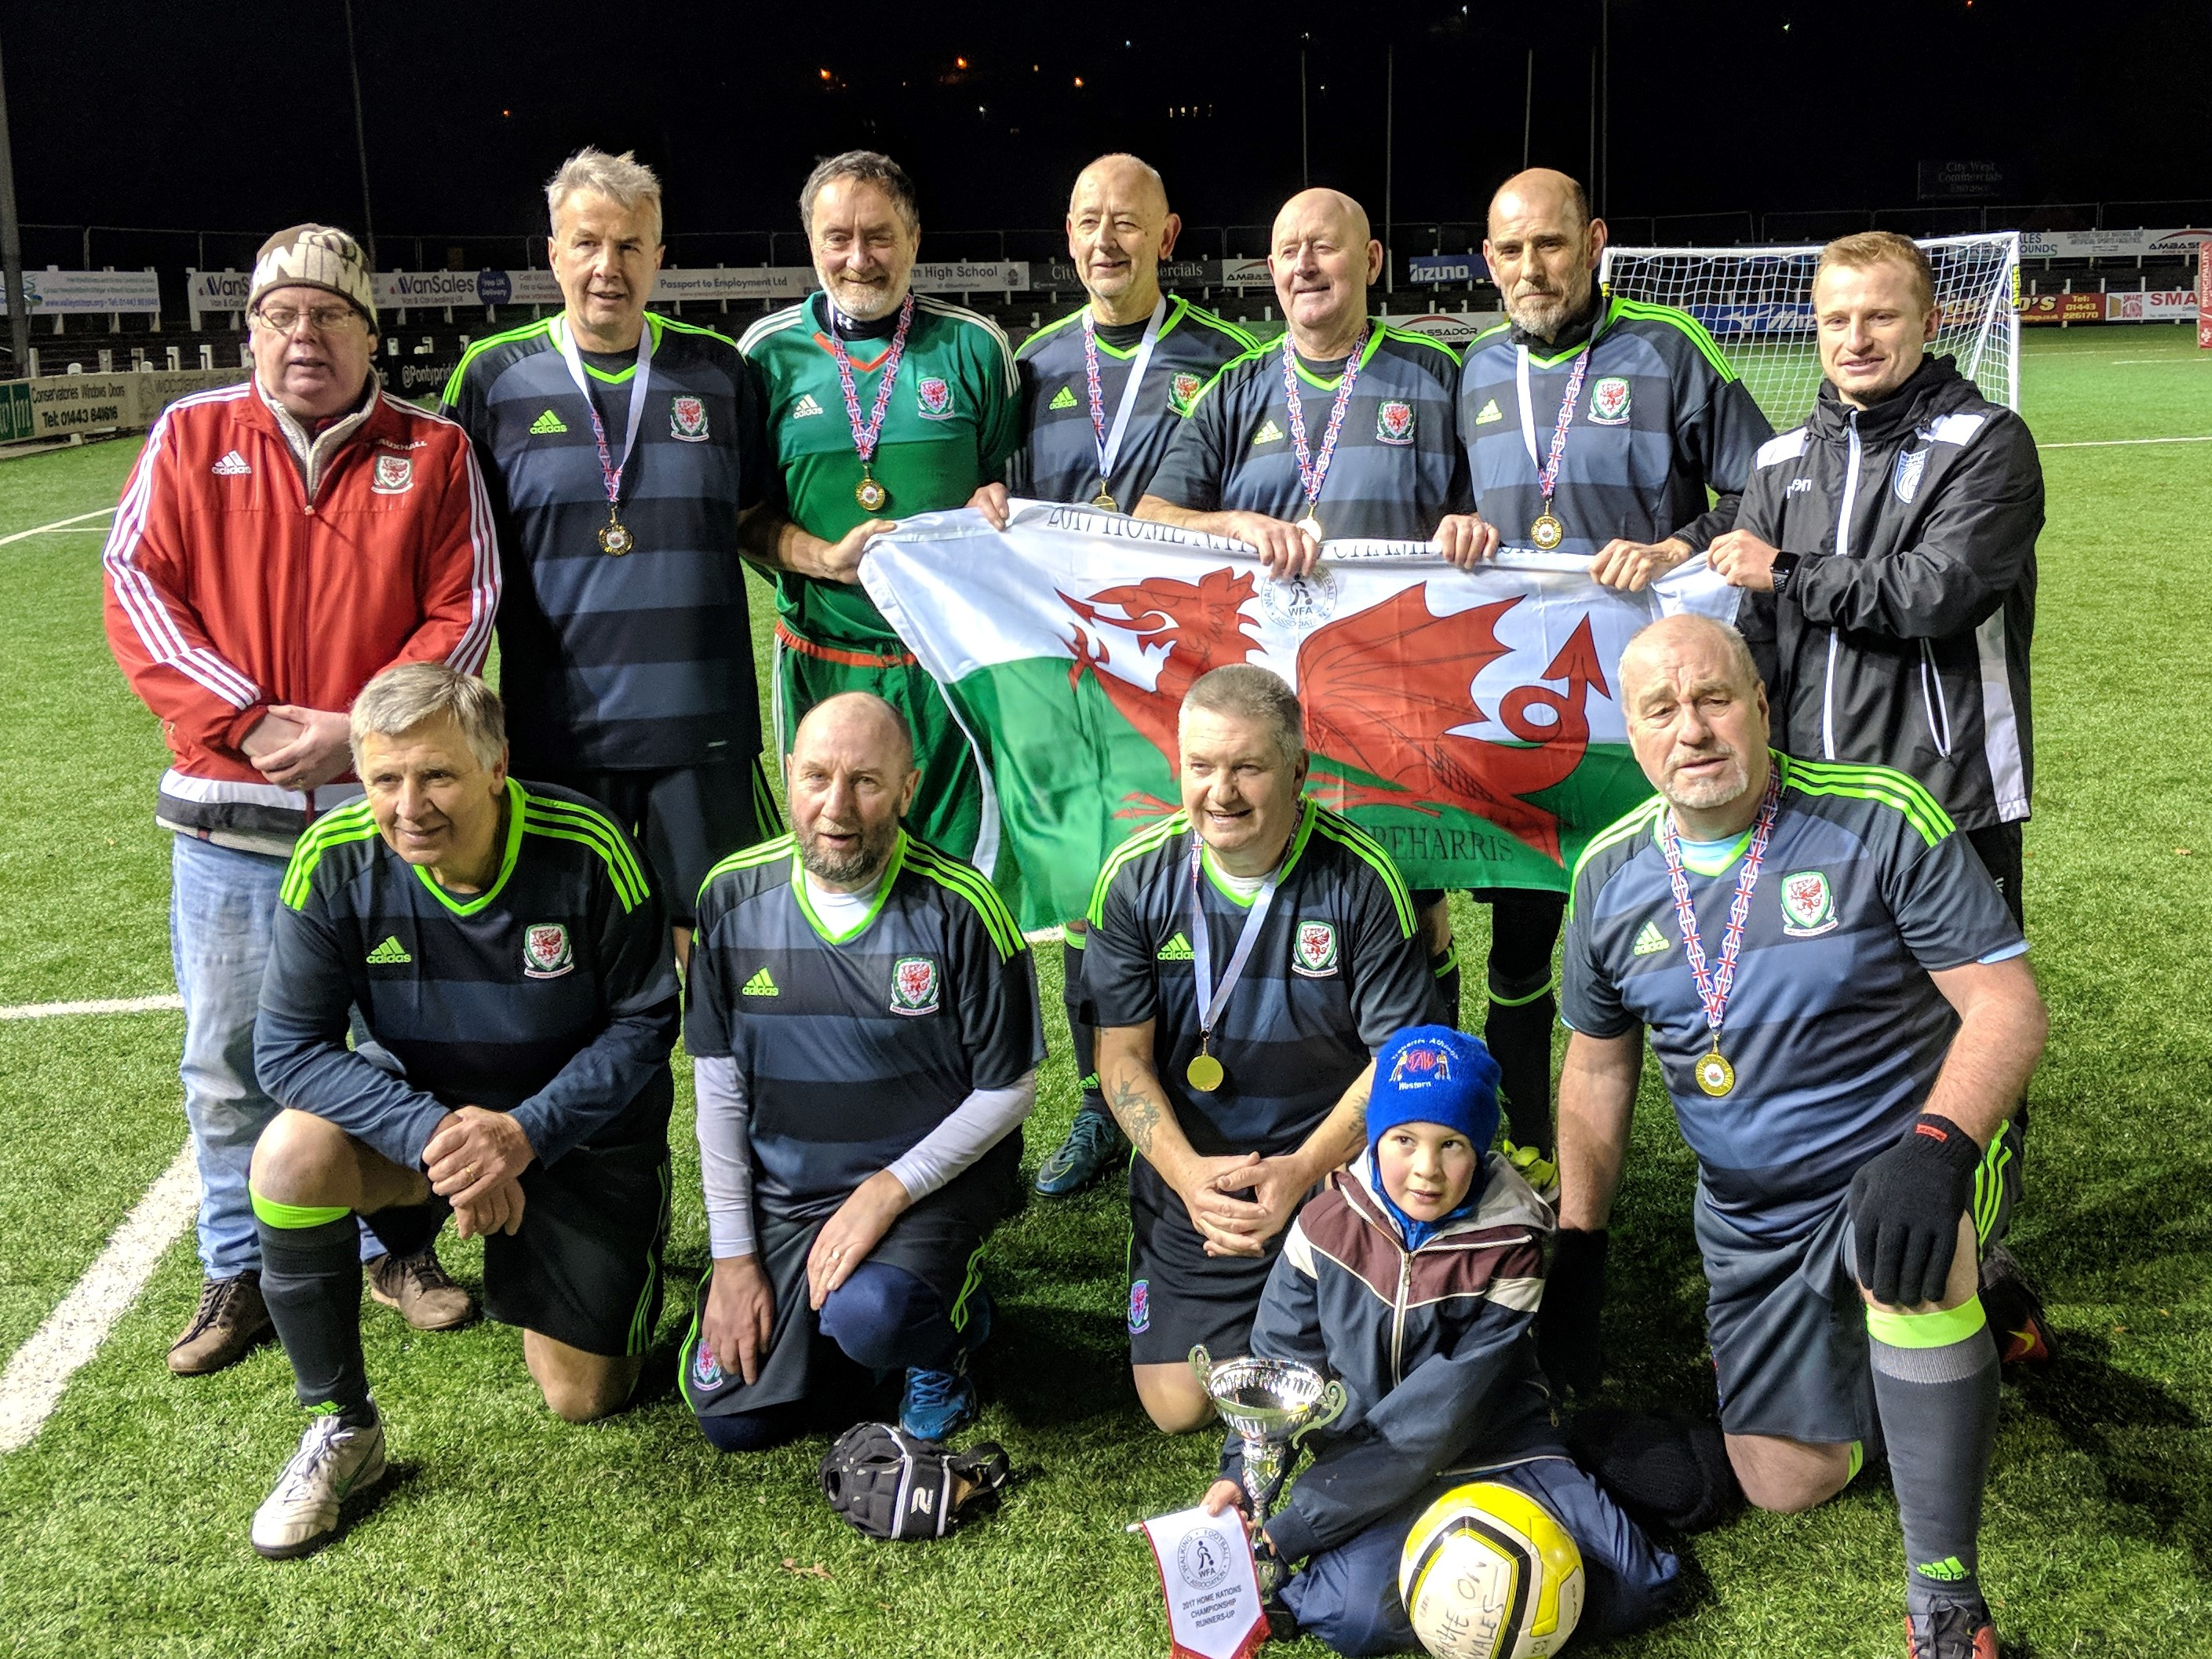 Wales defeated by England in Walking Football international clash